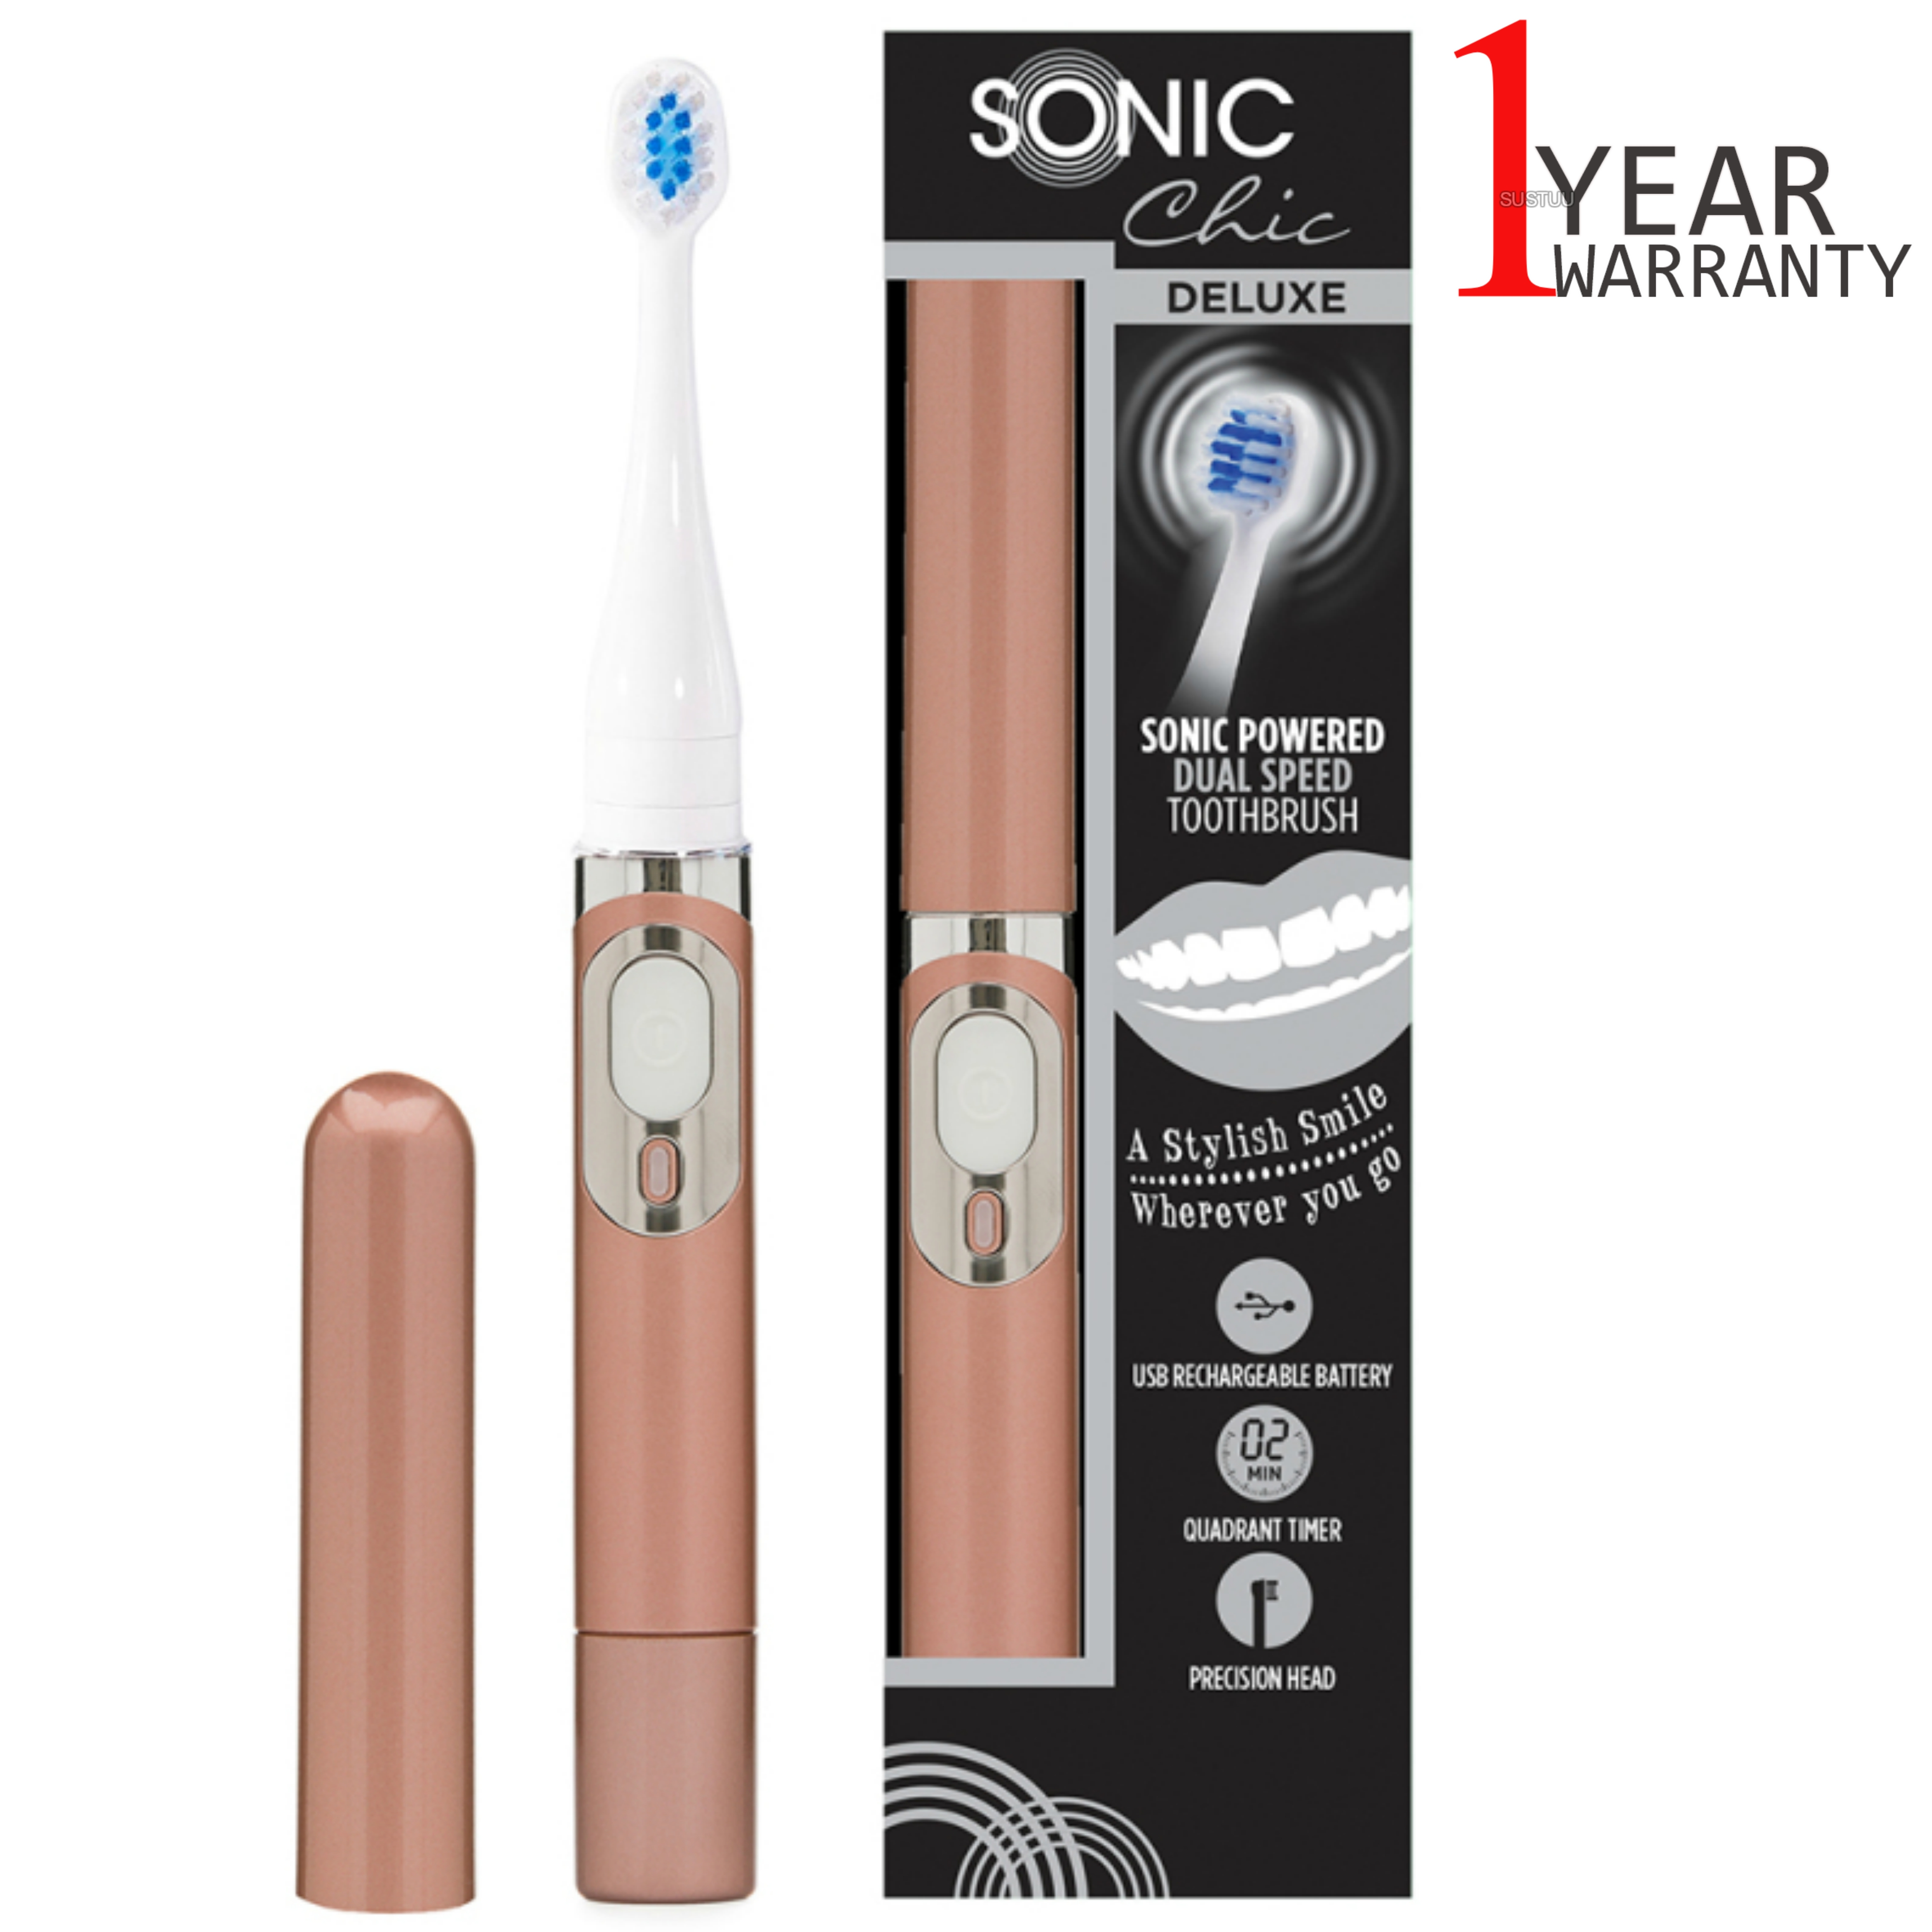 Sonic Chic Deluxe Rechargeable Travel Electric Toothbrush | Rose Gold | USP0544 | NEW